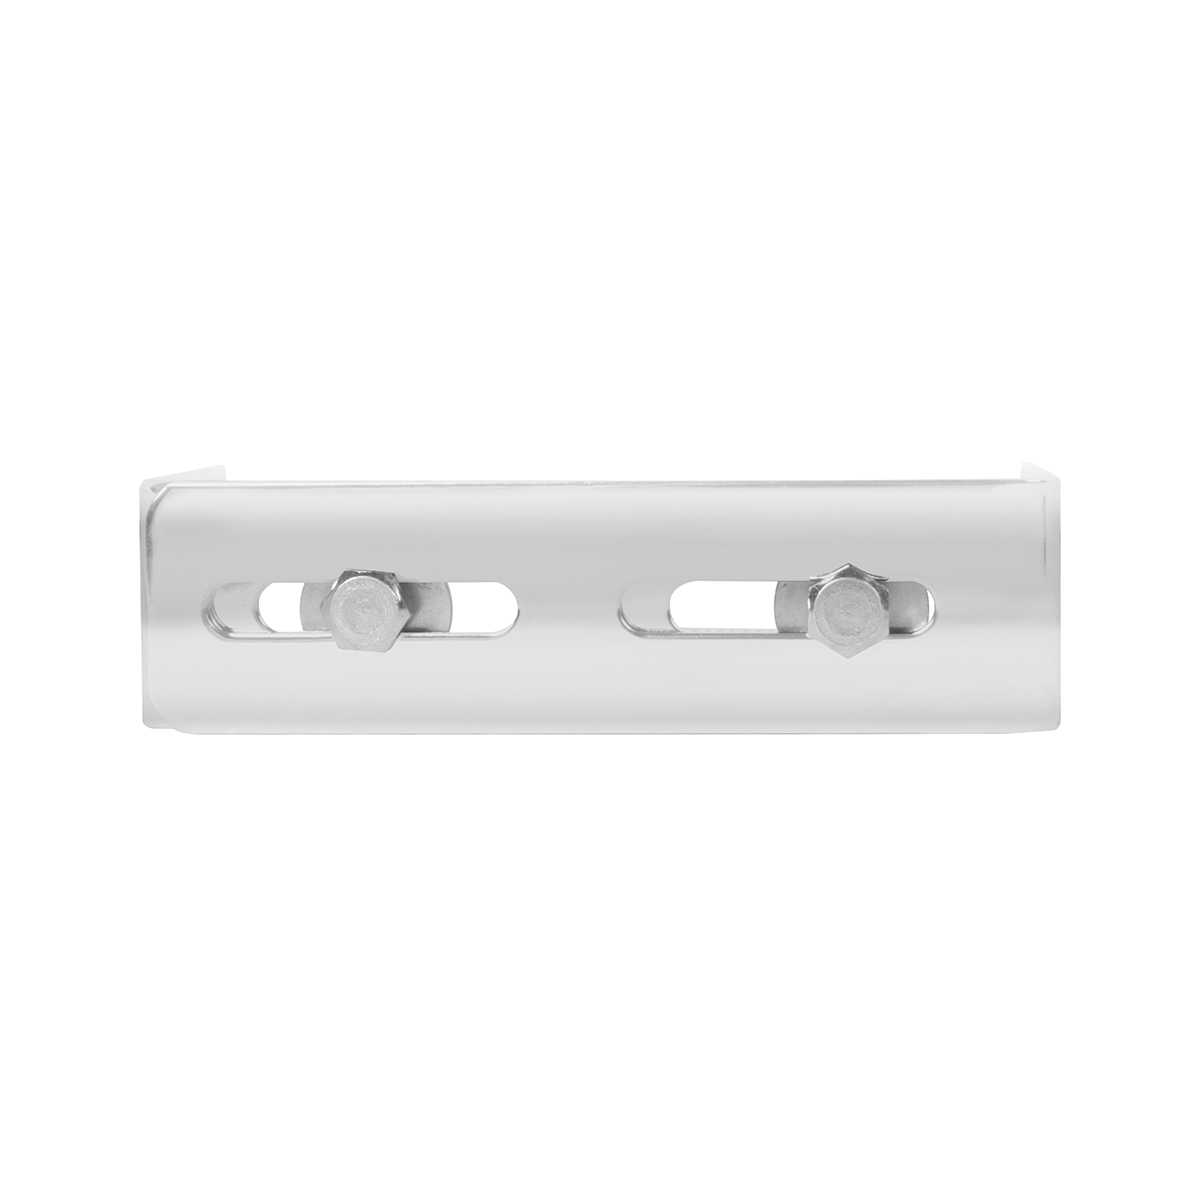 #91137 Chrome Plated Steel Adjustable C.B. Bracket - Front View